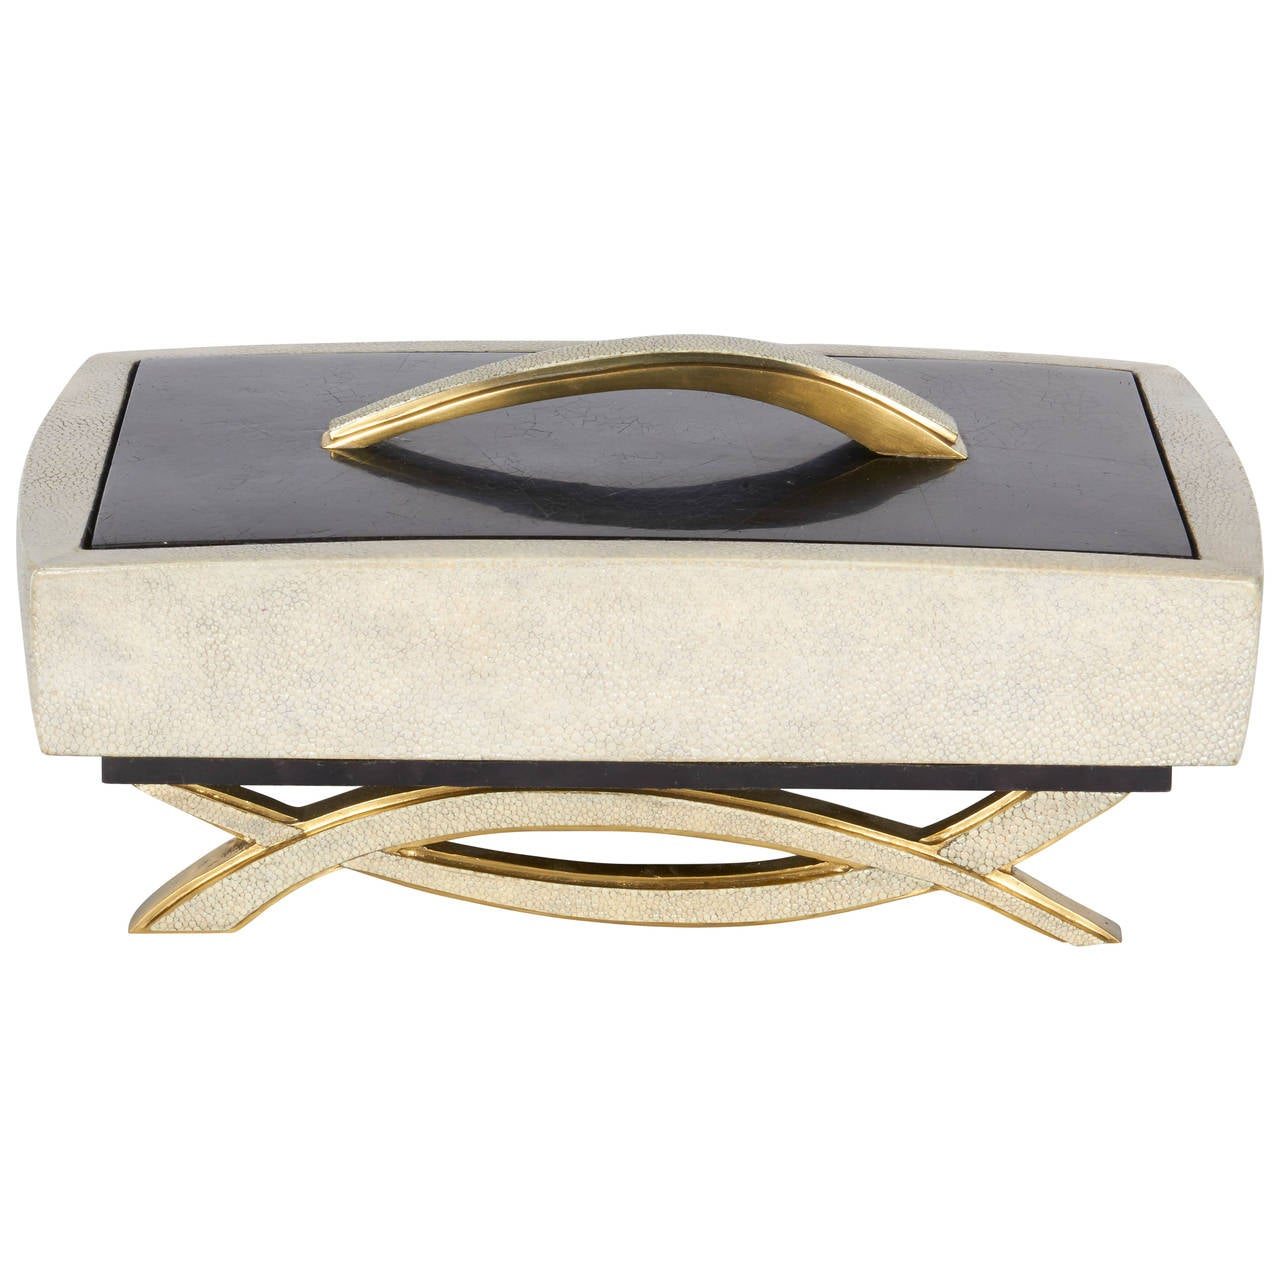 Exquisite Exotic Shagreen and Pen Shell Footed Box 1